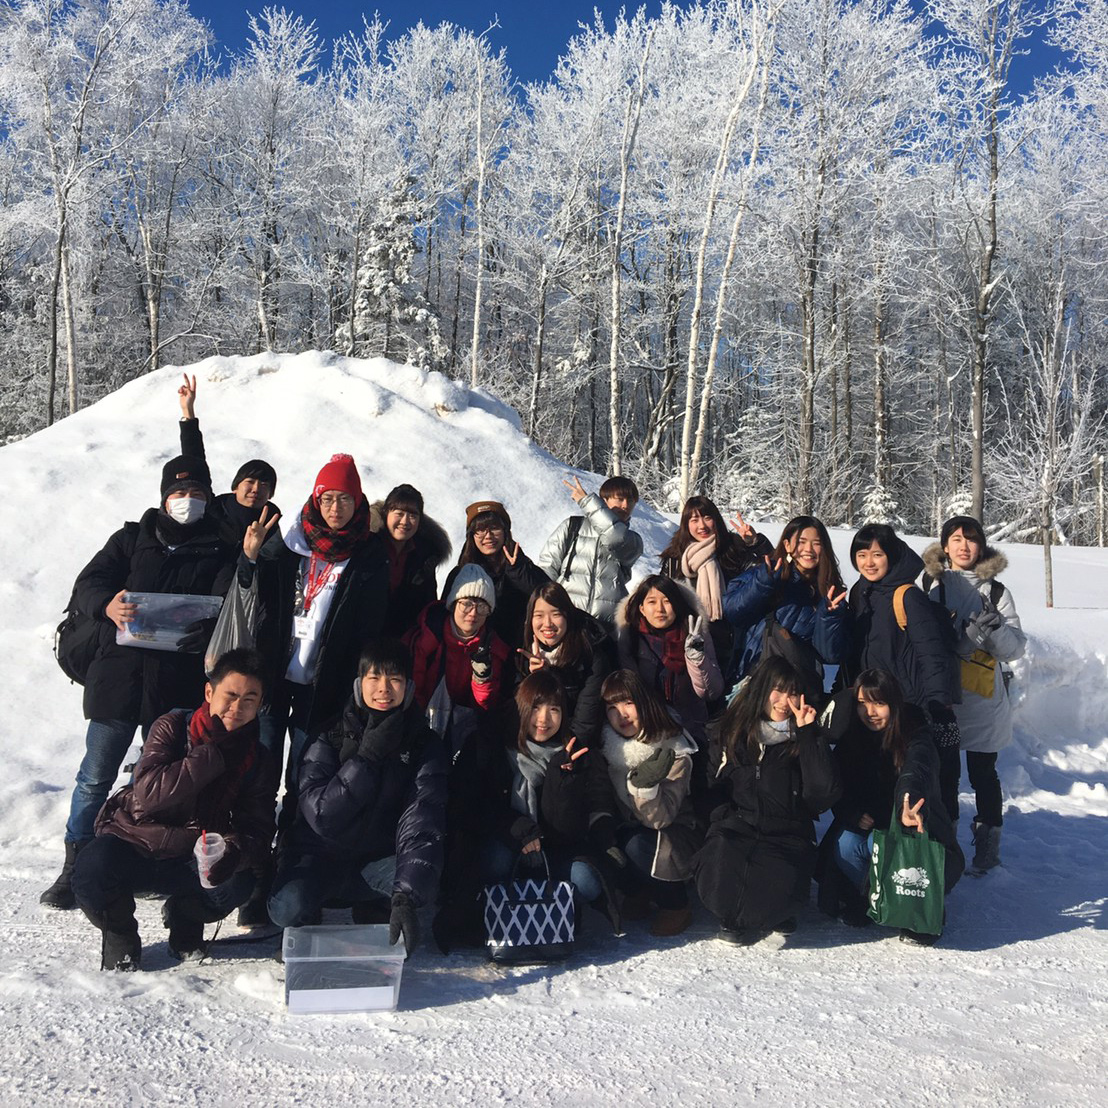 group of students posing for photo in snow